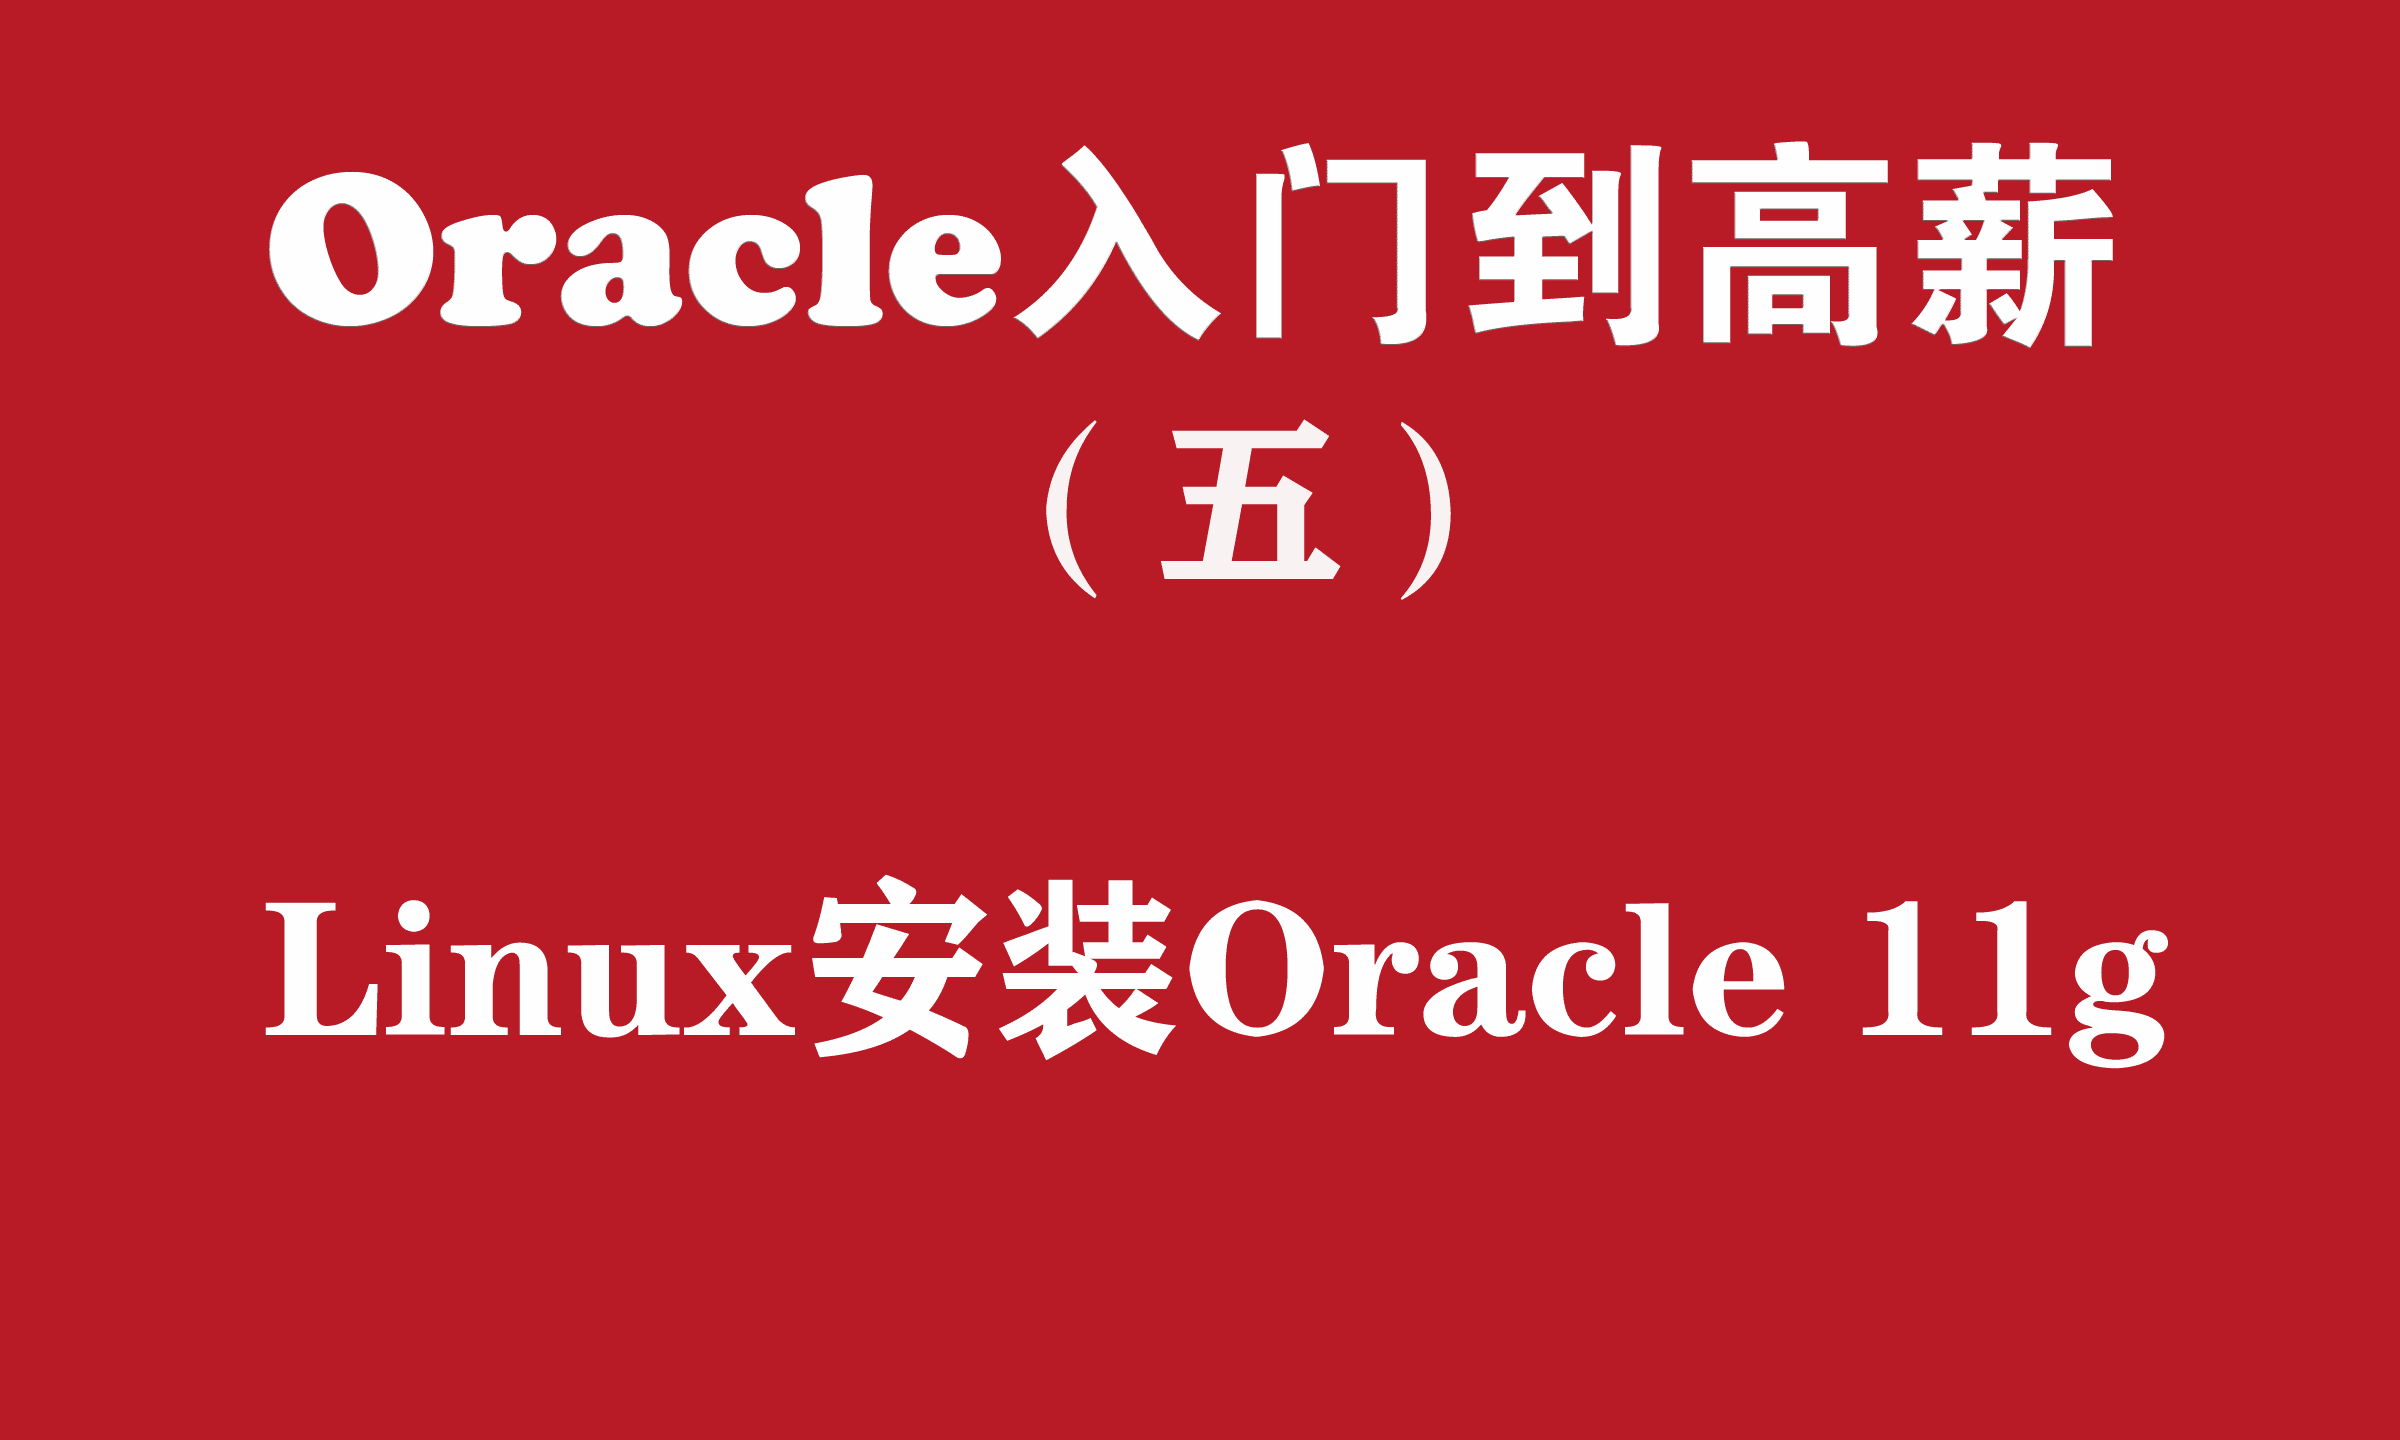 Linux快速安装Oracle11g